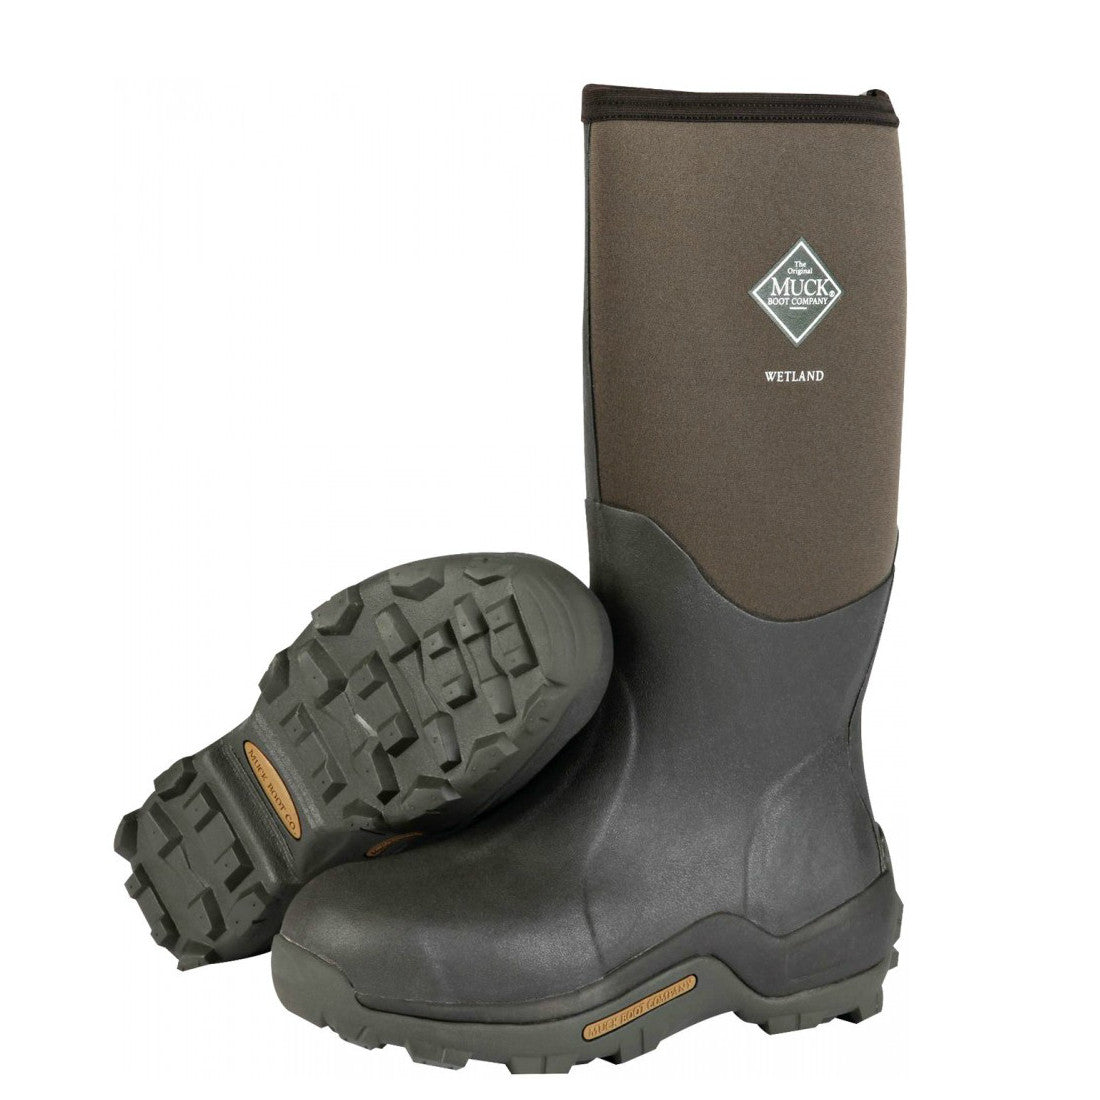 Muck Boots Wetland Premium Field Boot - Bark WET-998K